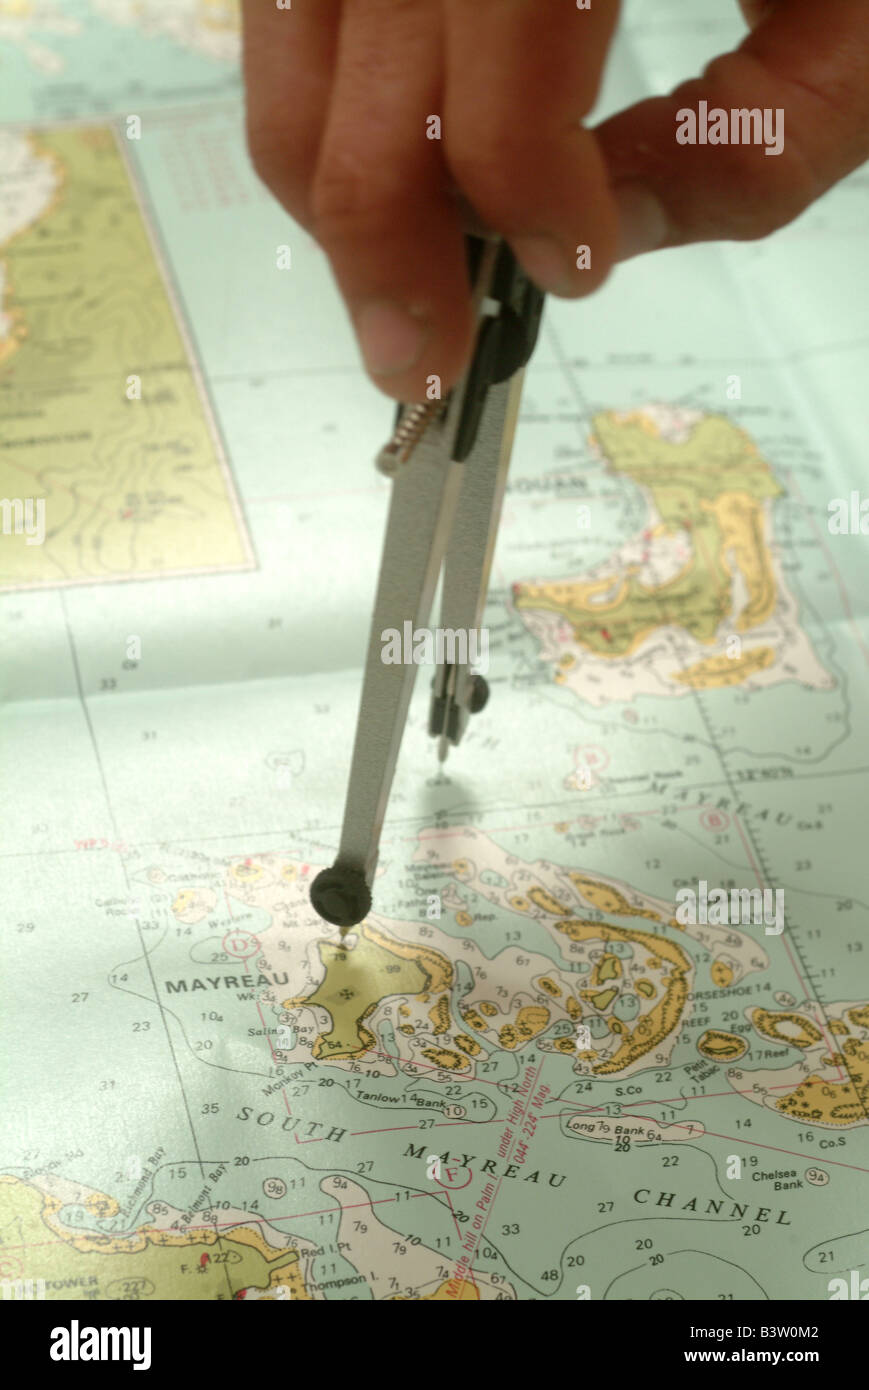 Caribbean West Indies Grenadines Planning a course on a chart with measuring tools - Stock Image